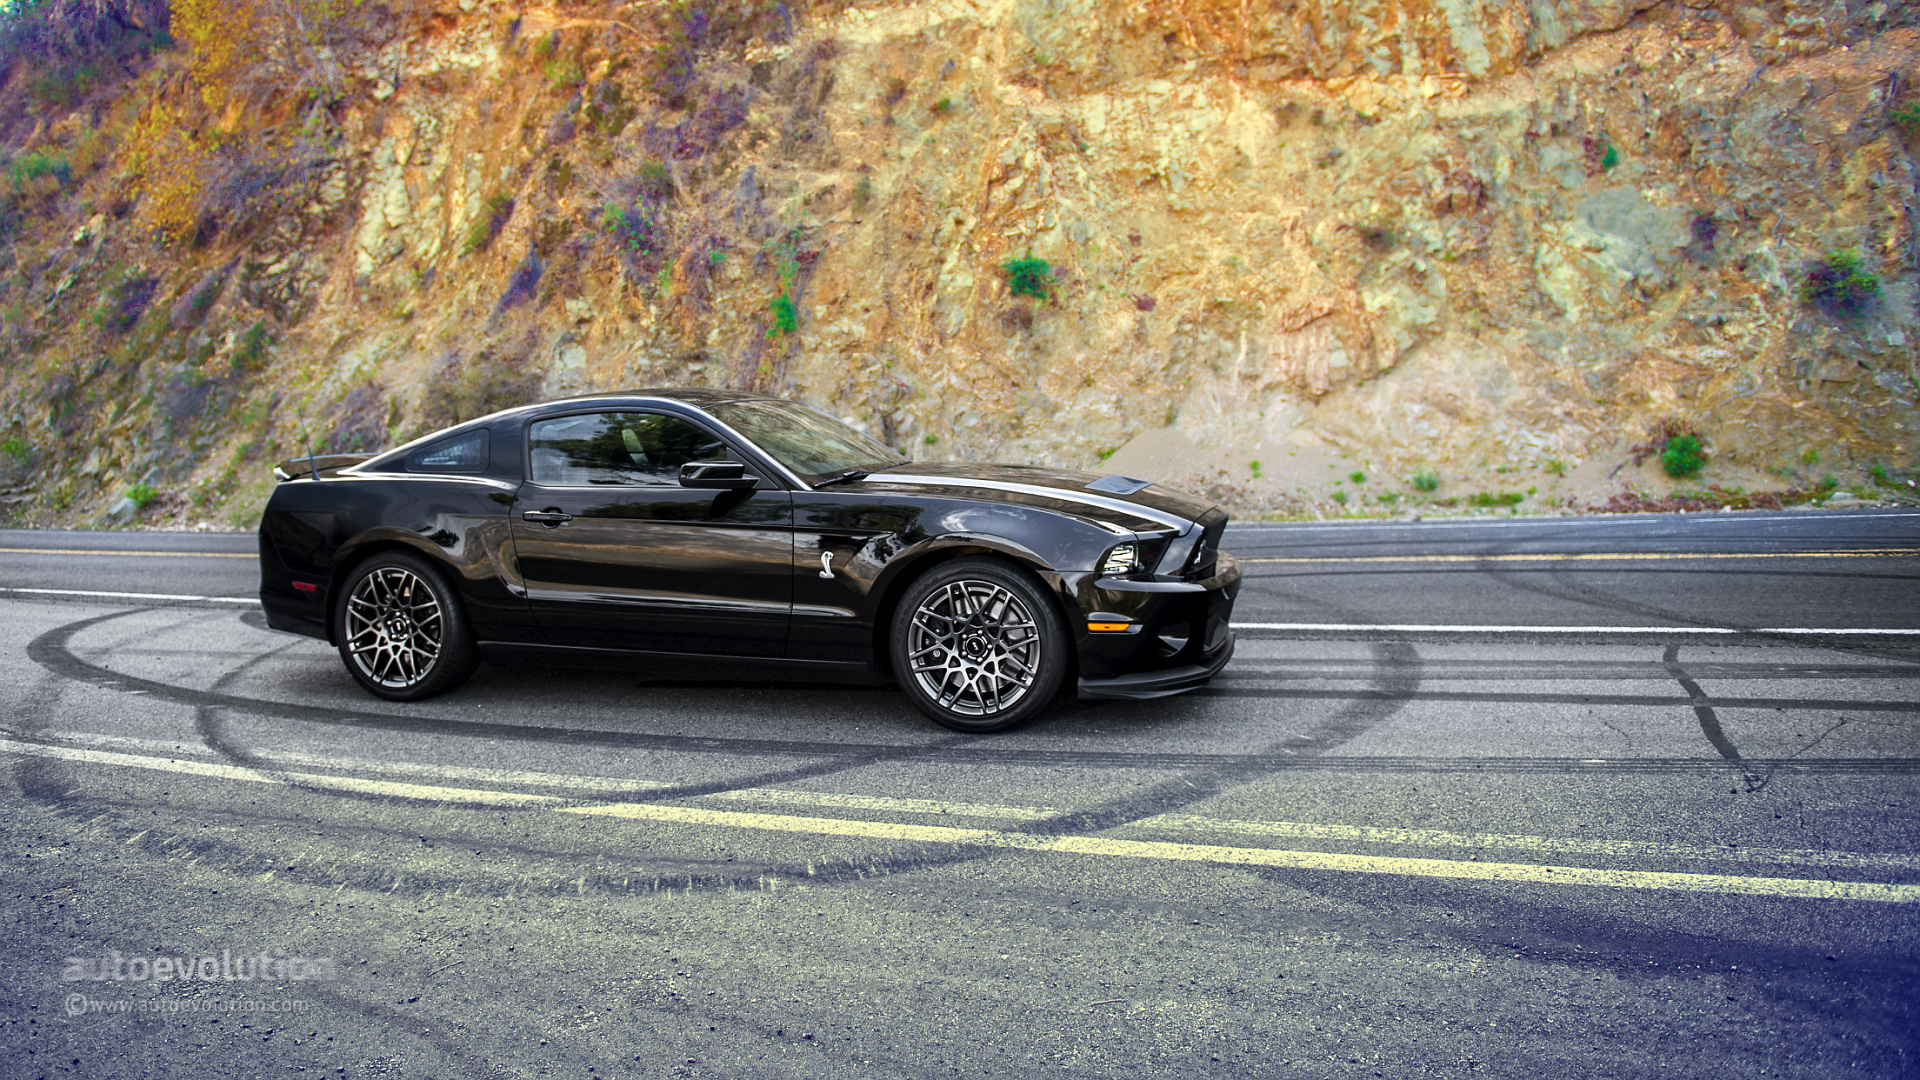 2014 Shelby Gt500 Wallpaper Wallpapersafari HD Wallpapers Download free images and photos [musssic.tk]